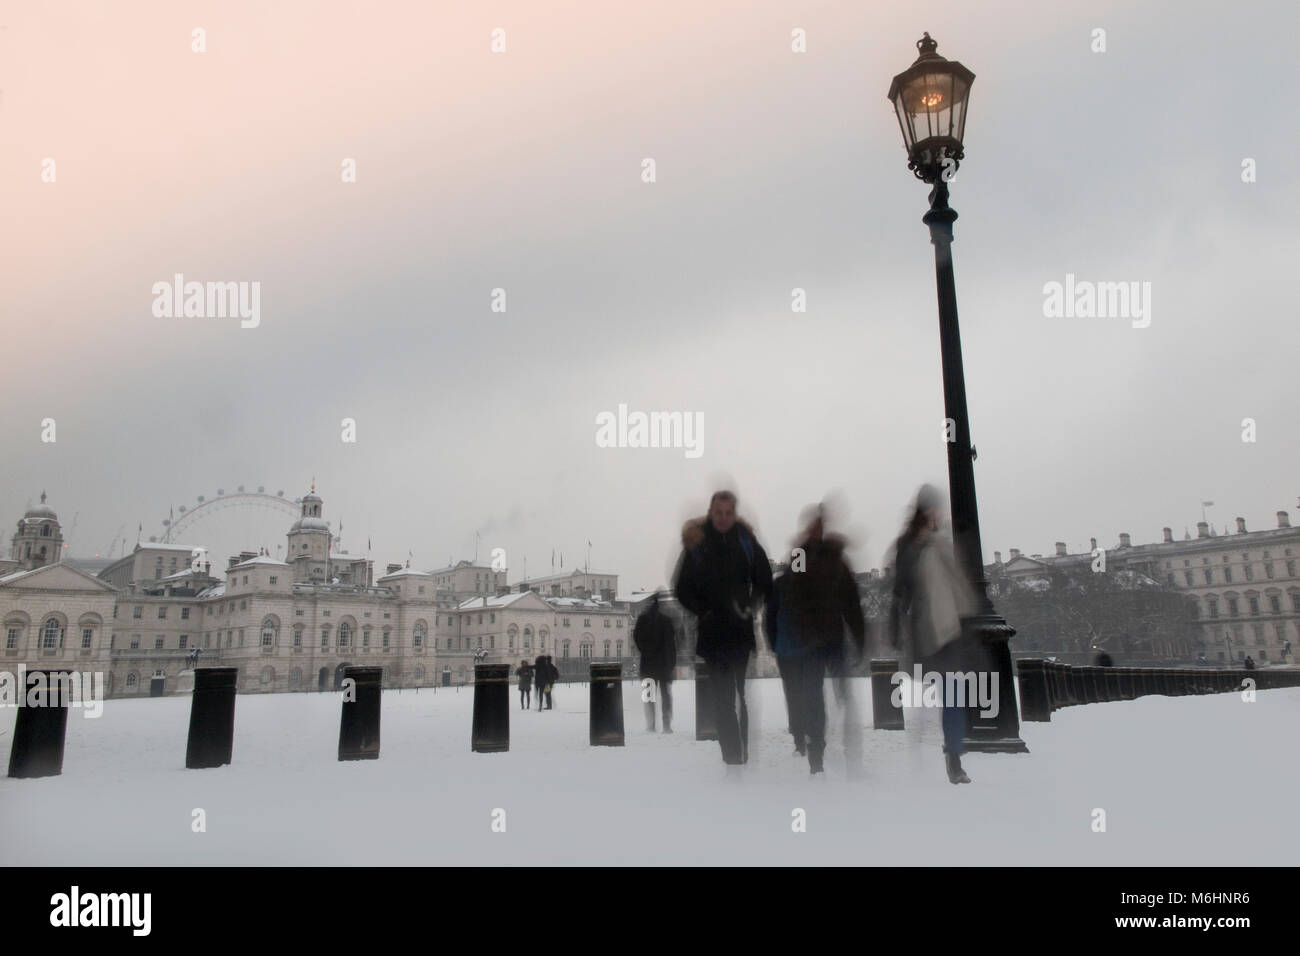 Winter snowscape at Horseguard's Parade in London - Stock Image